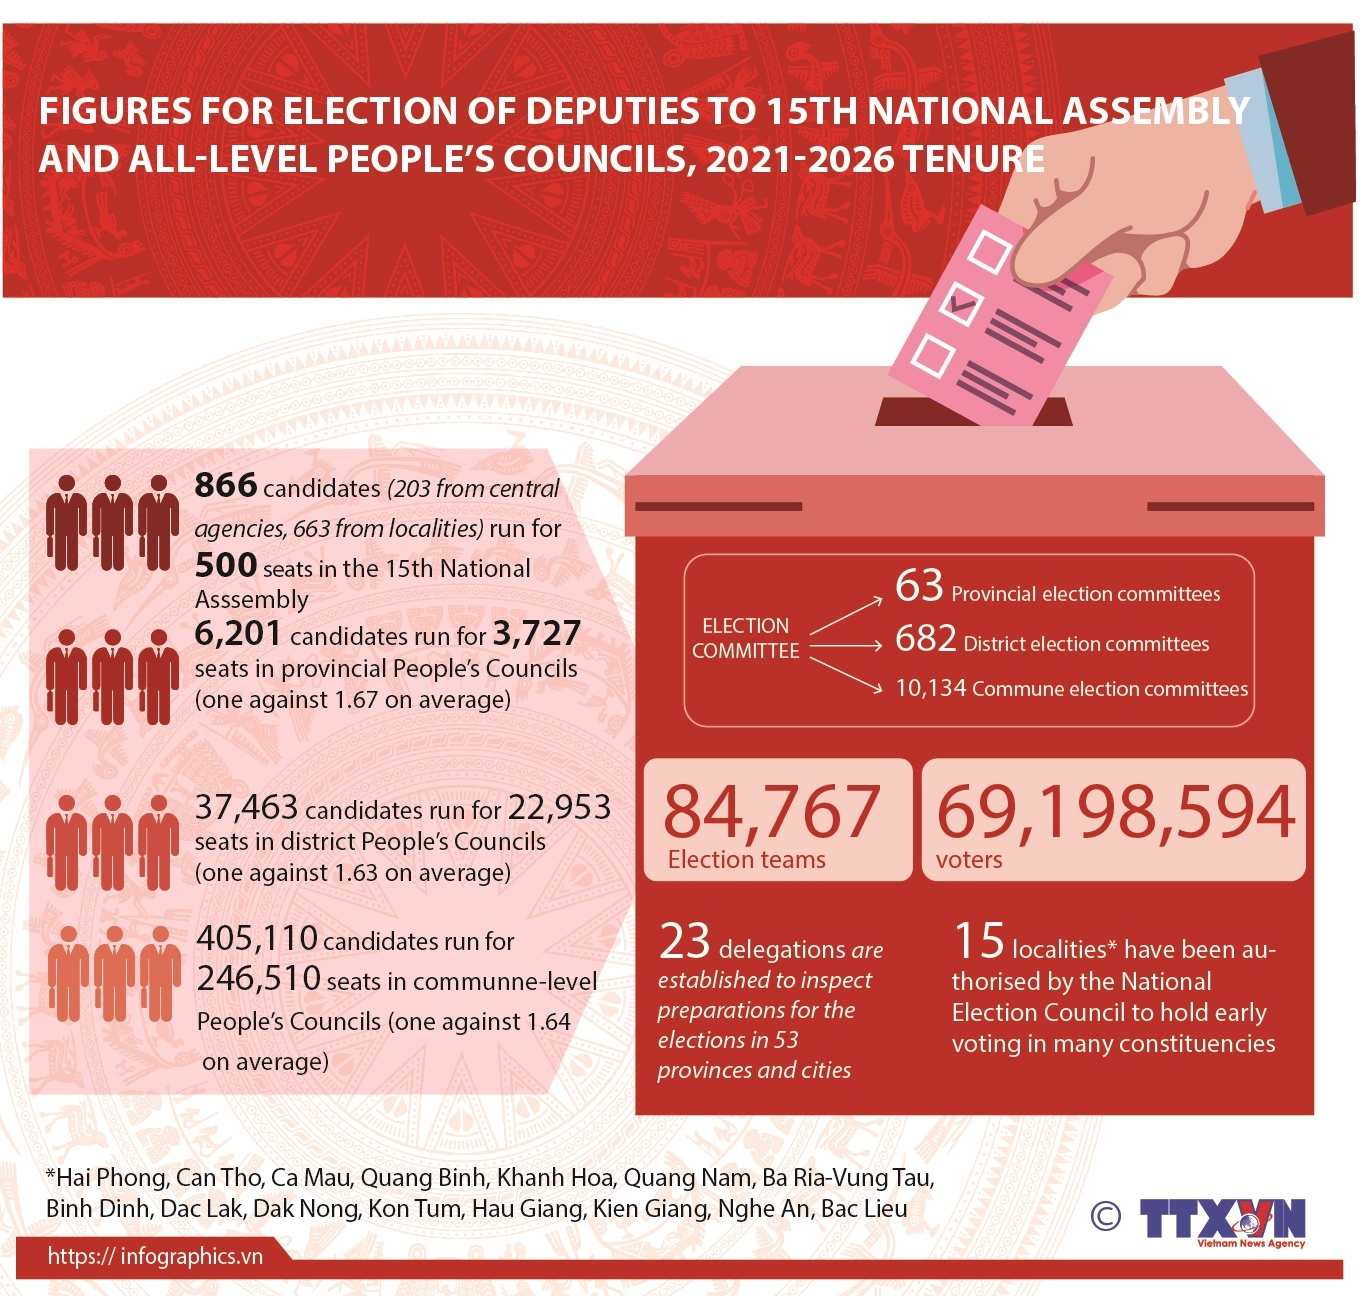 figures for elections of deputies to national assembly and peoples councils